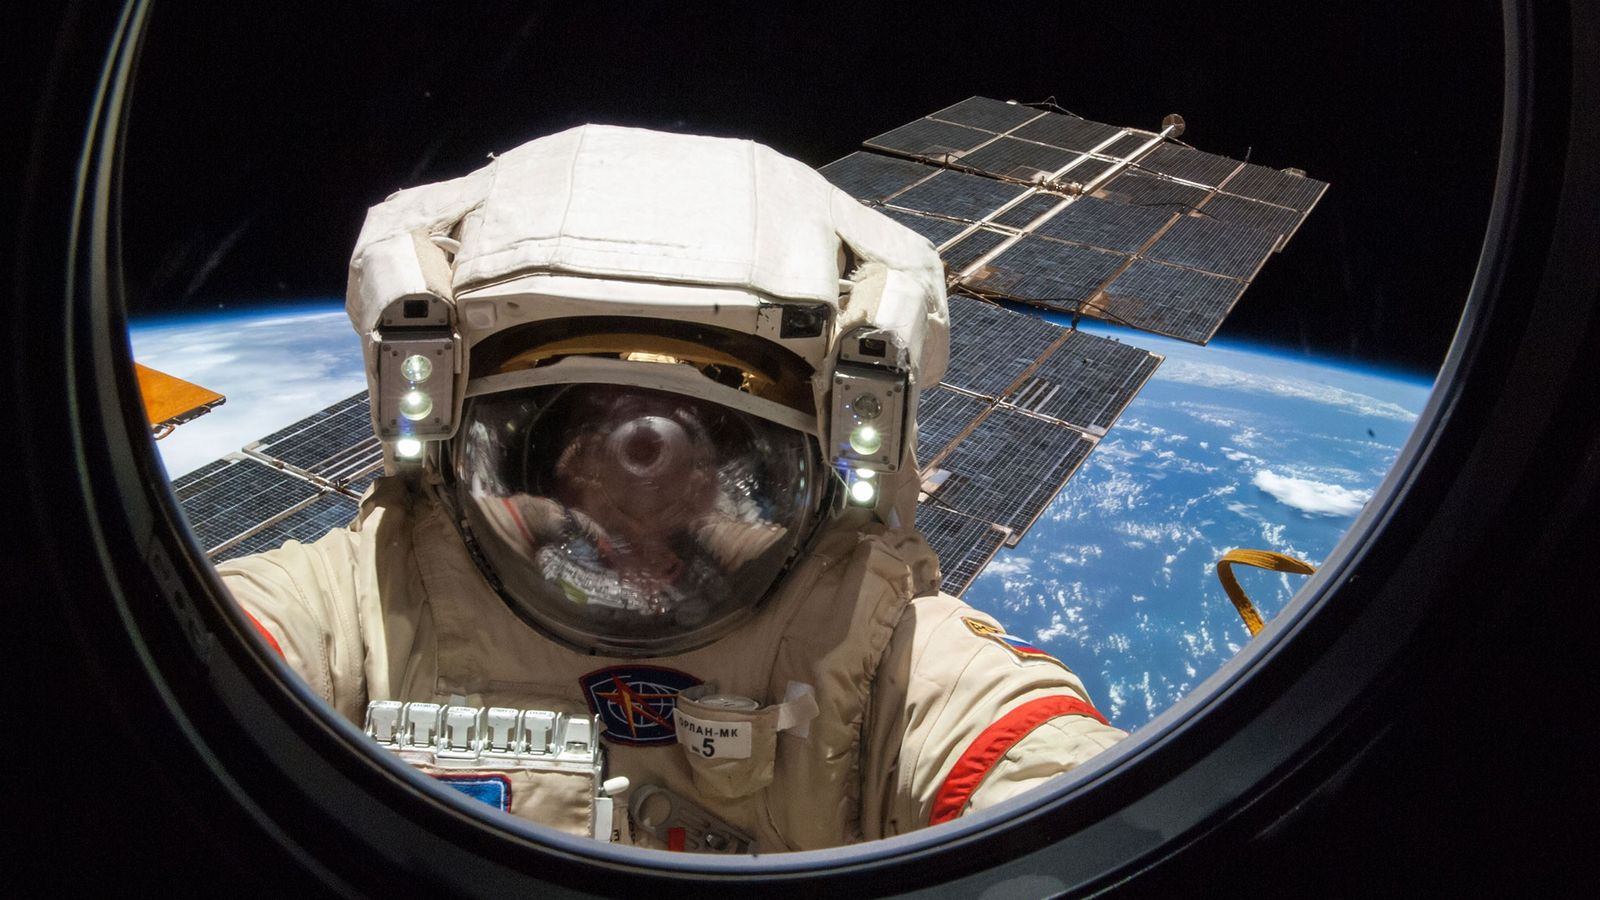 Russian cosmonaut, Alexander Skvortsov, works on the International Space Station during a five-hour, 11-minute spacewalk.